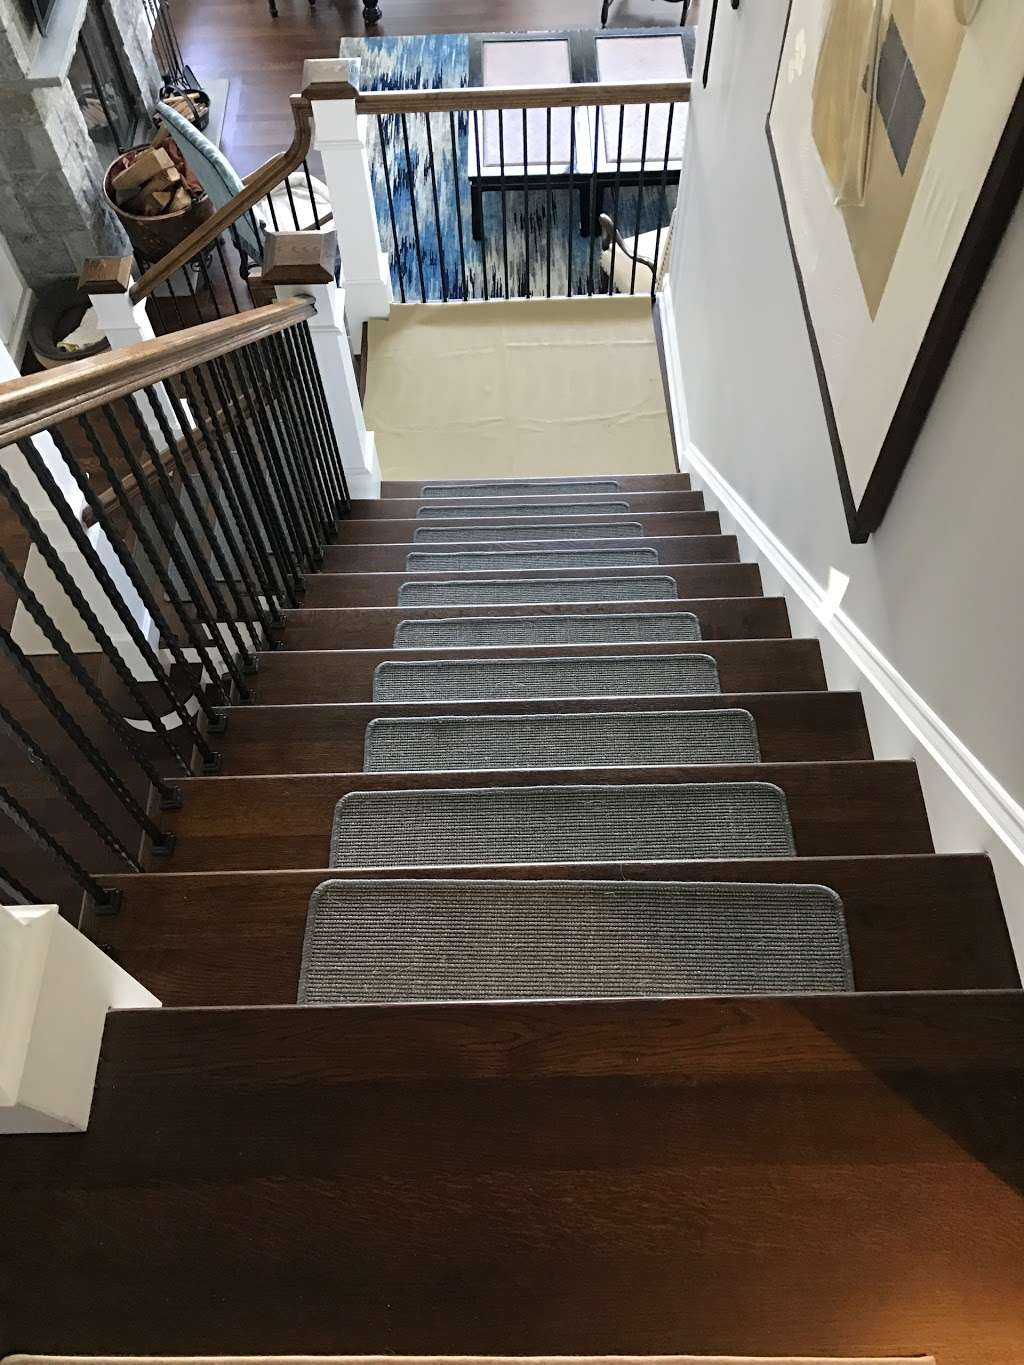 Elite Floor Services Inc - home goods store  | Photo 1 of 2 | Address: 12 Saratoga Ave, Yonkers, NY 10705, USA | Phone: (212) 228-1050